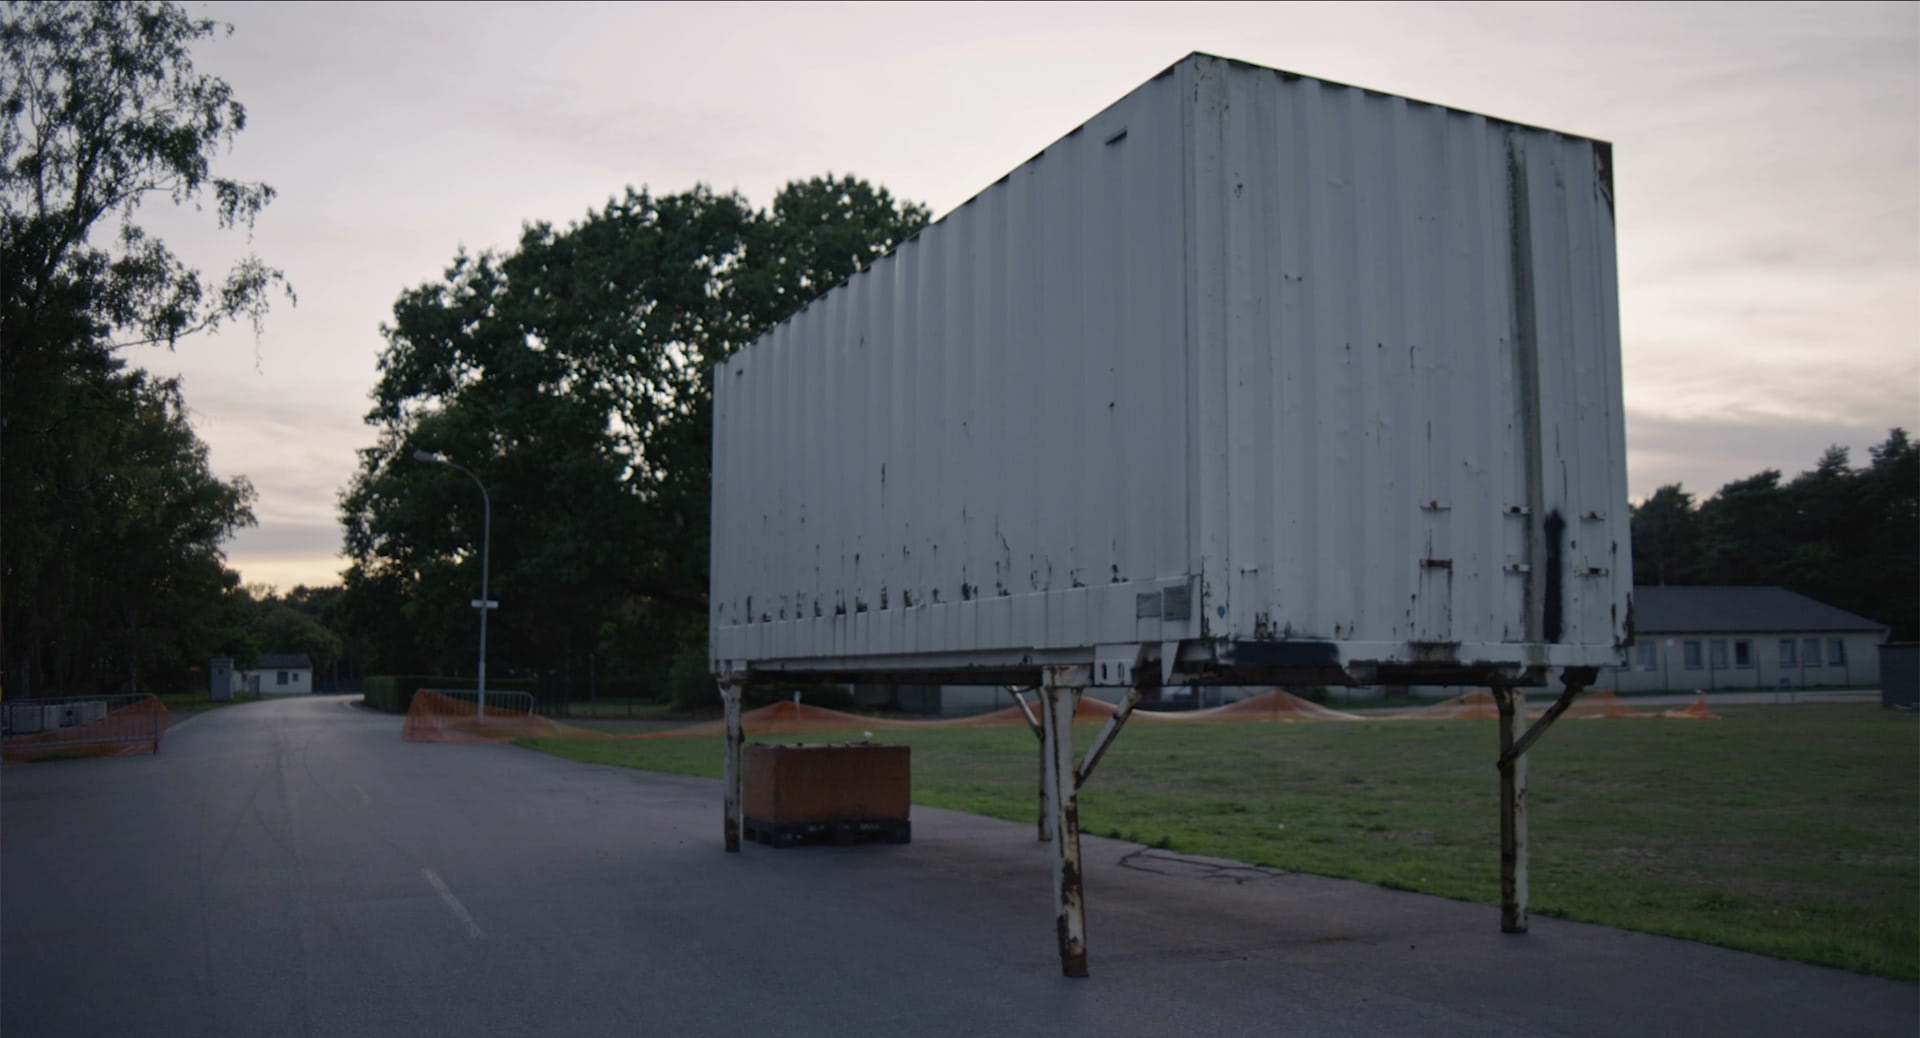 A trucking container sitting abandoned on a small dusk at magic hour.